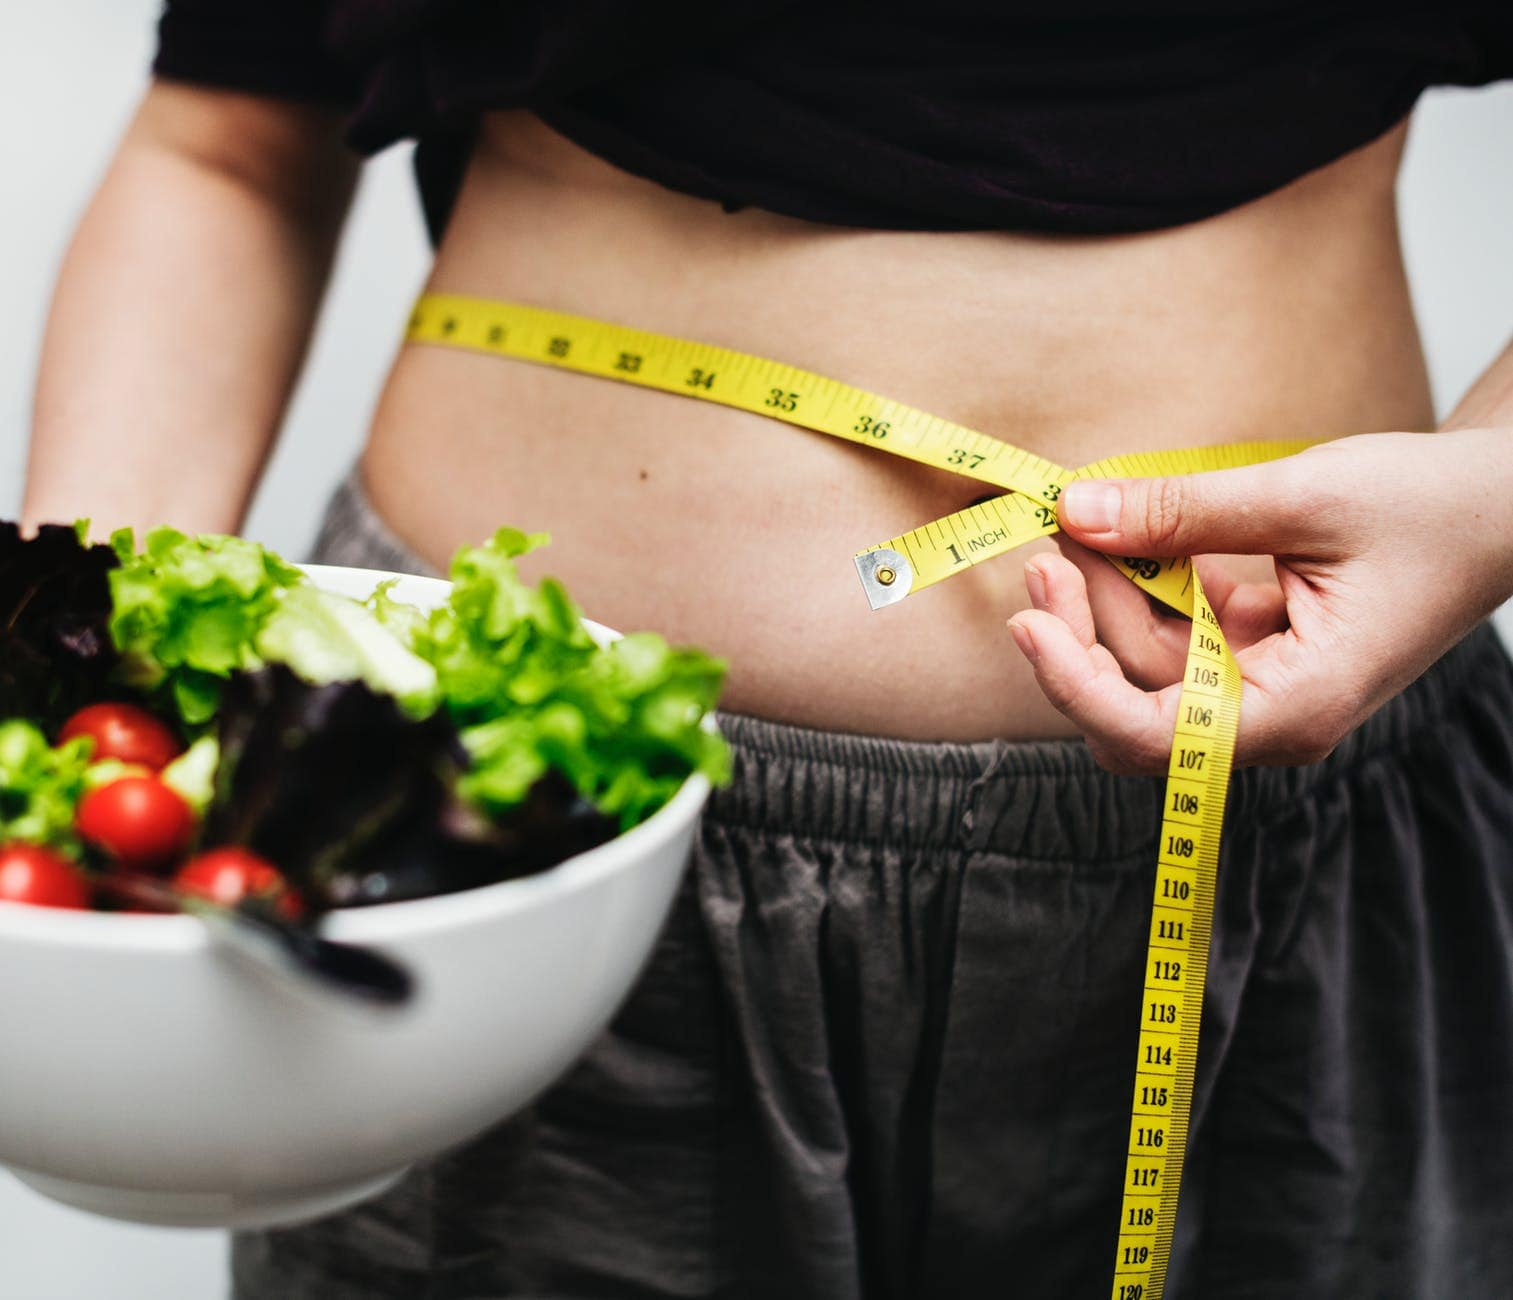 Diet and exercise go hand in hand with financial focus!